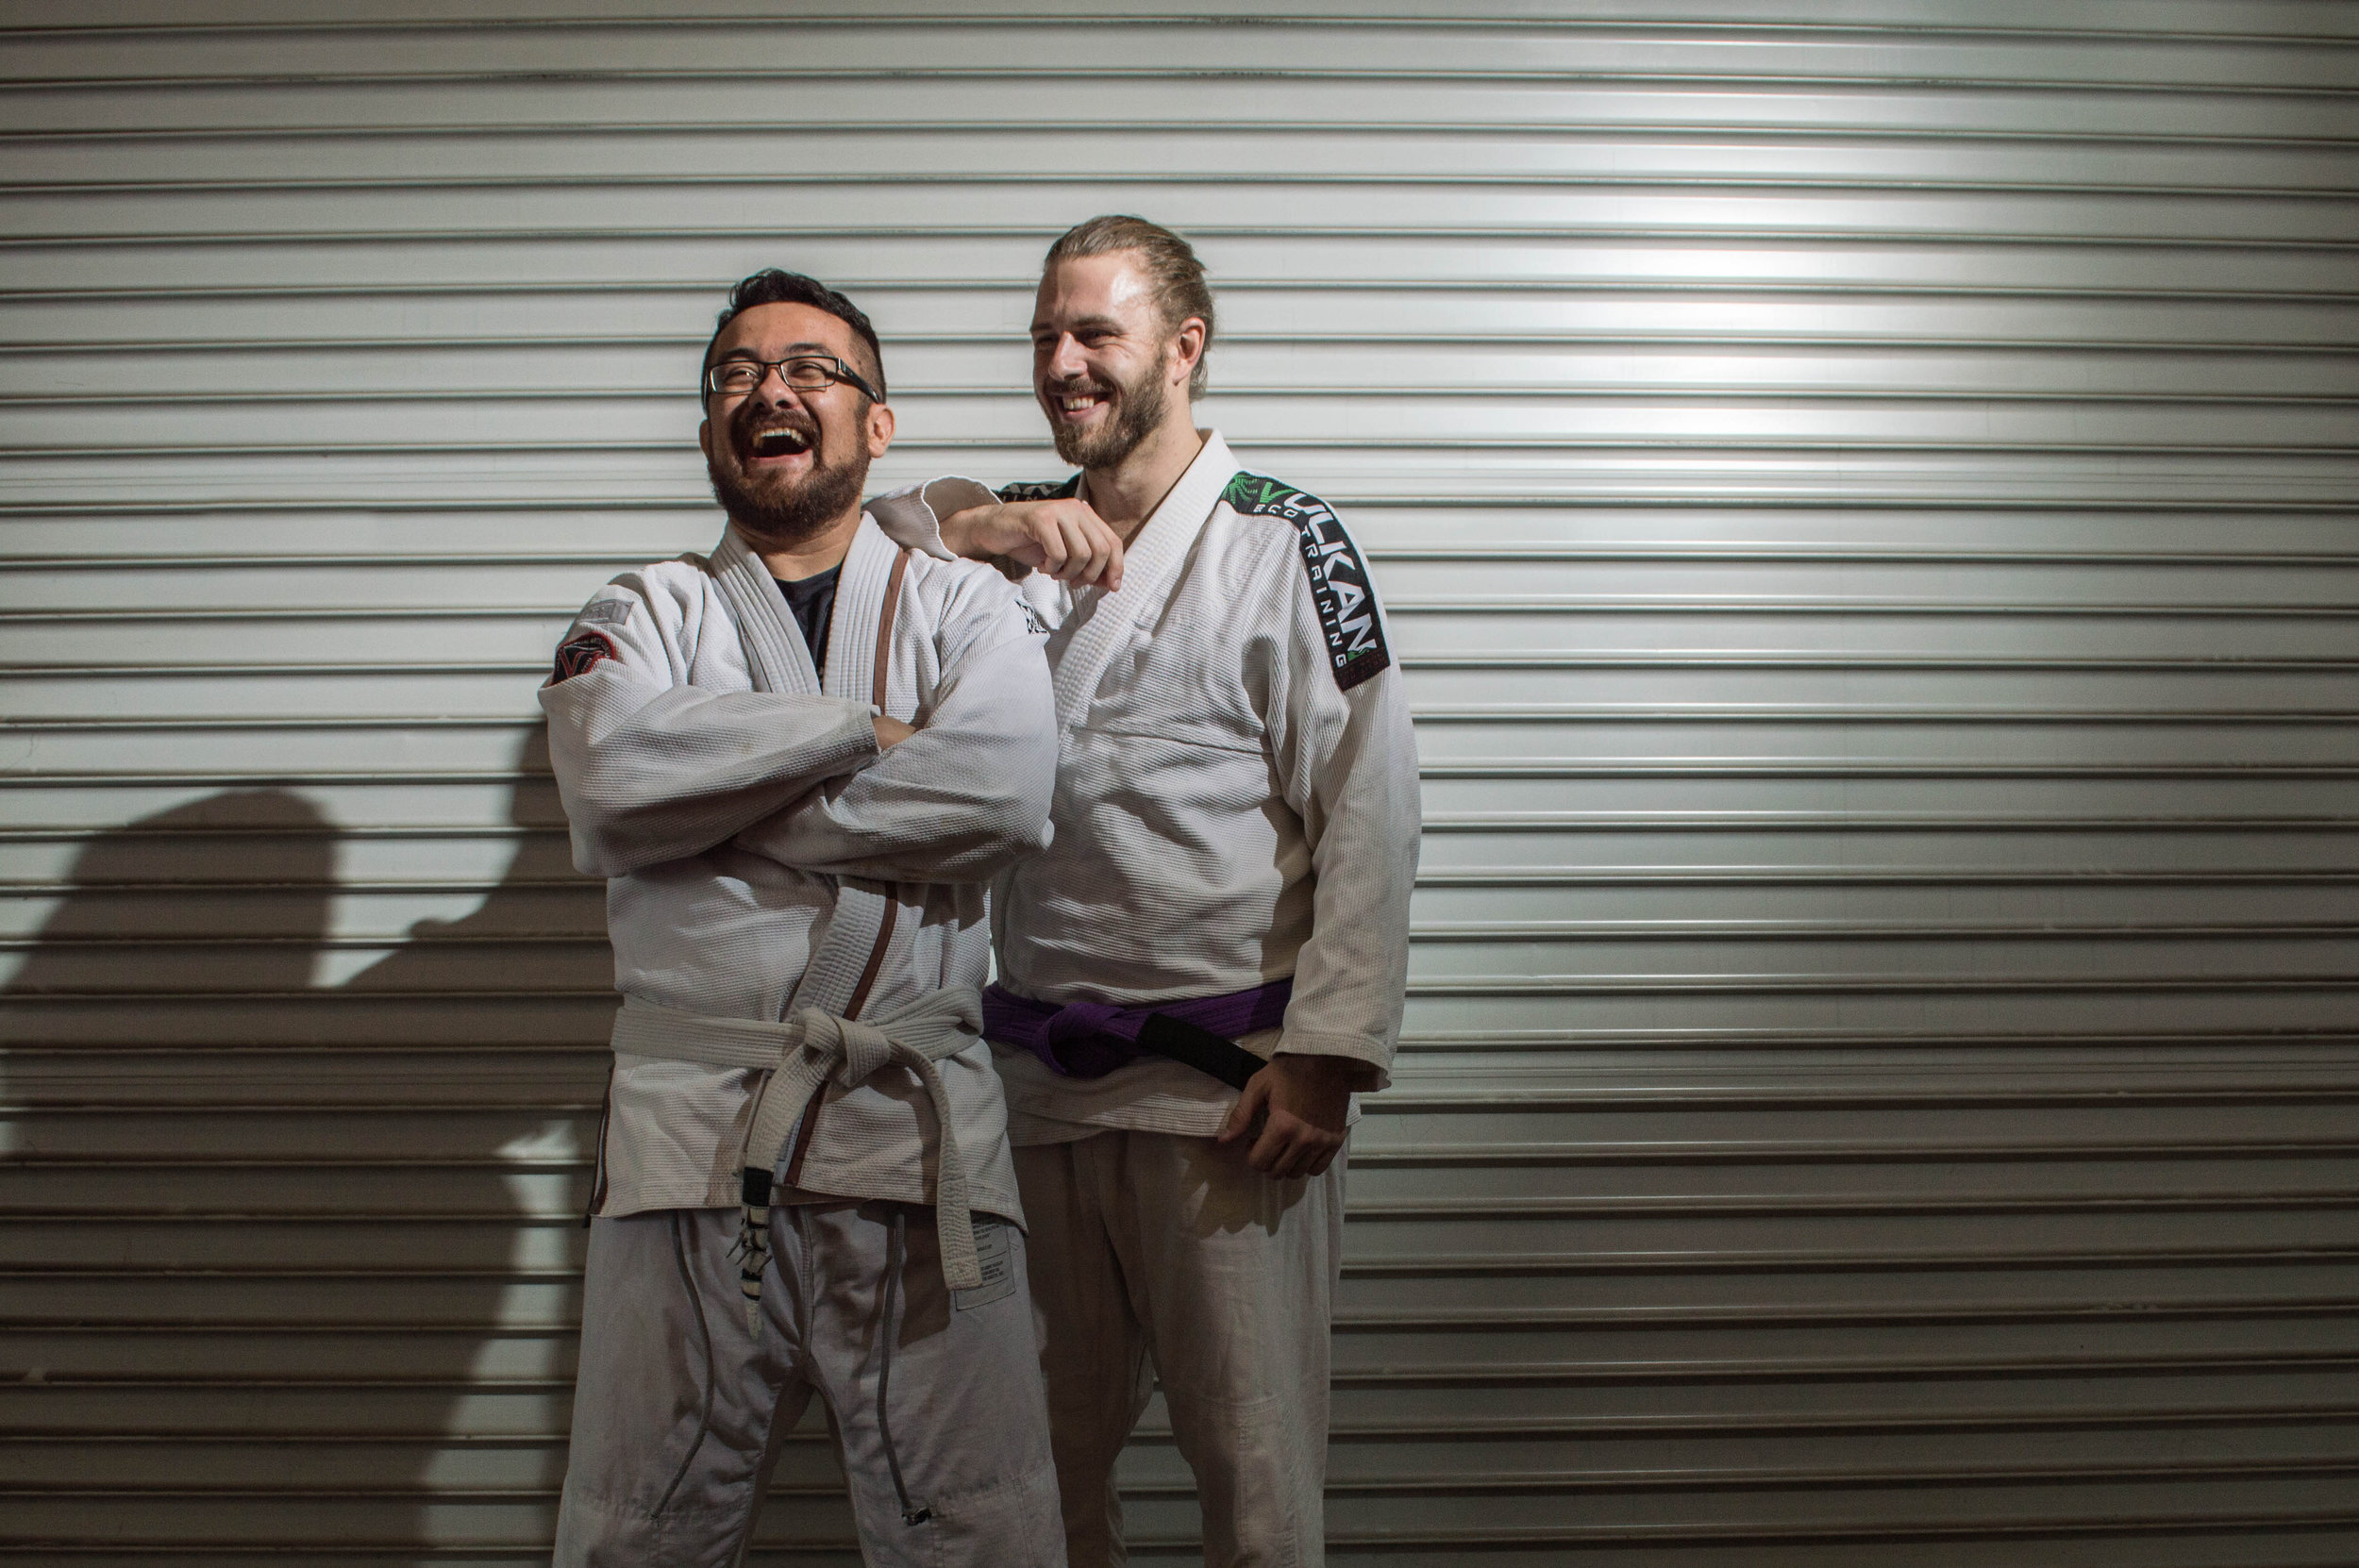 Show Us Some Love - MMA and Grappling don't have off-seasons. So the best way to show some love to your two favorite podcasters is to give us a donation. Doesn't matter how big or small, we appreciate your support no matter what.To donate, click the button below!